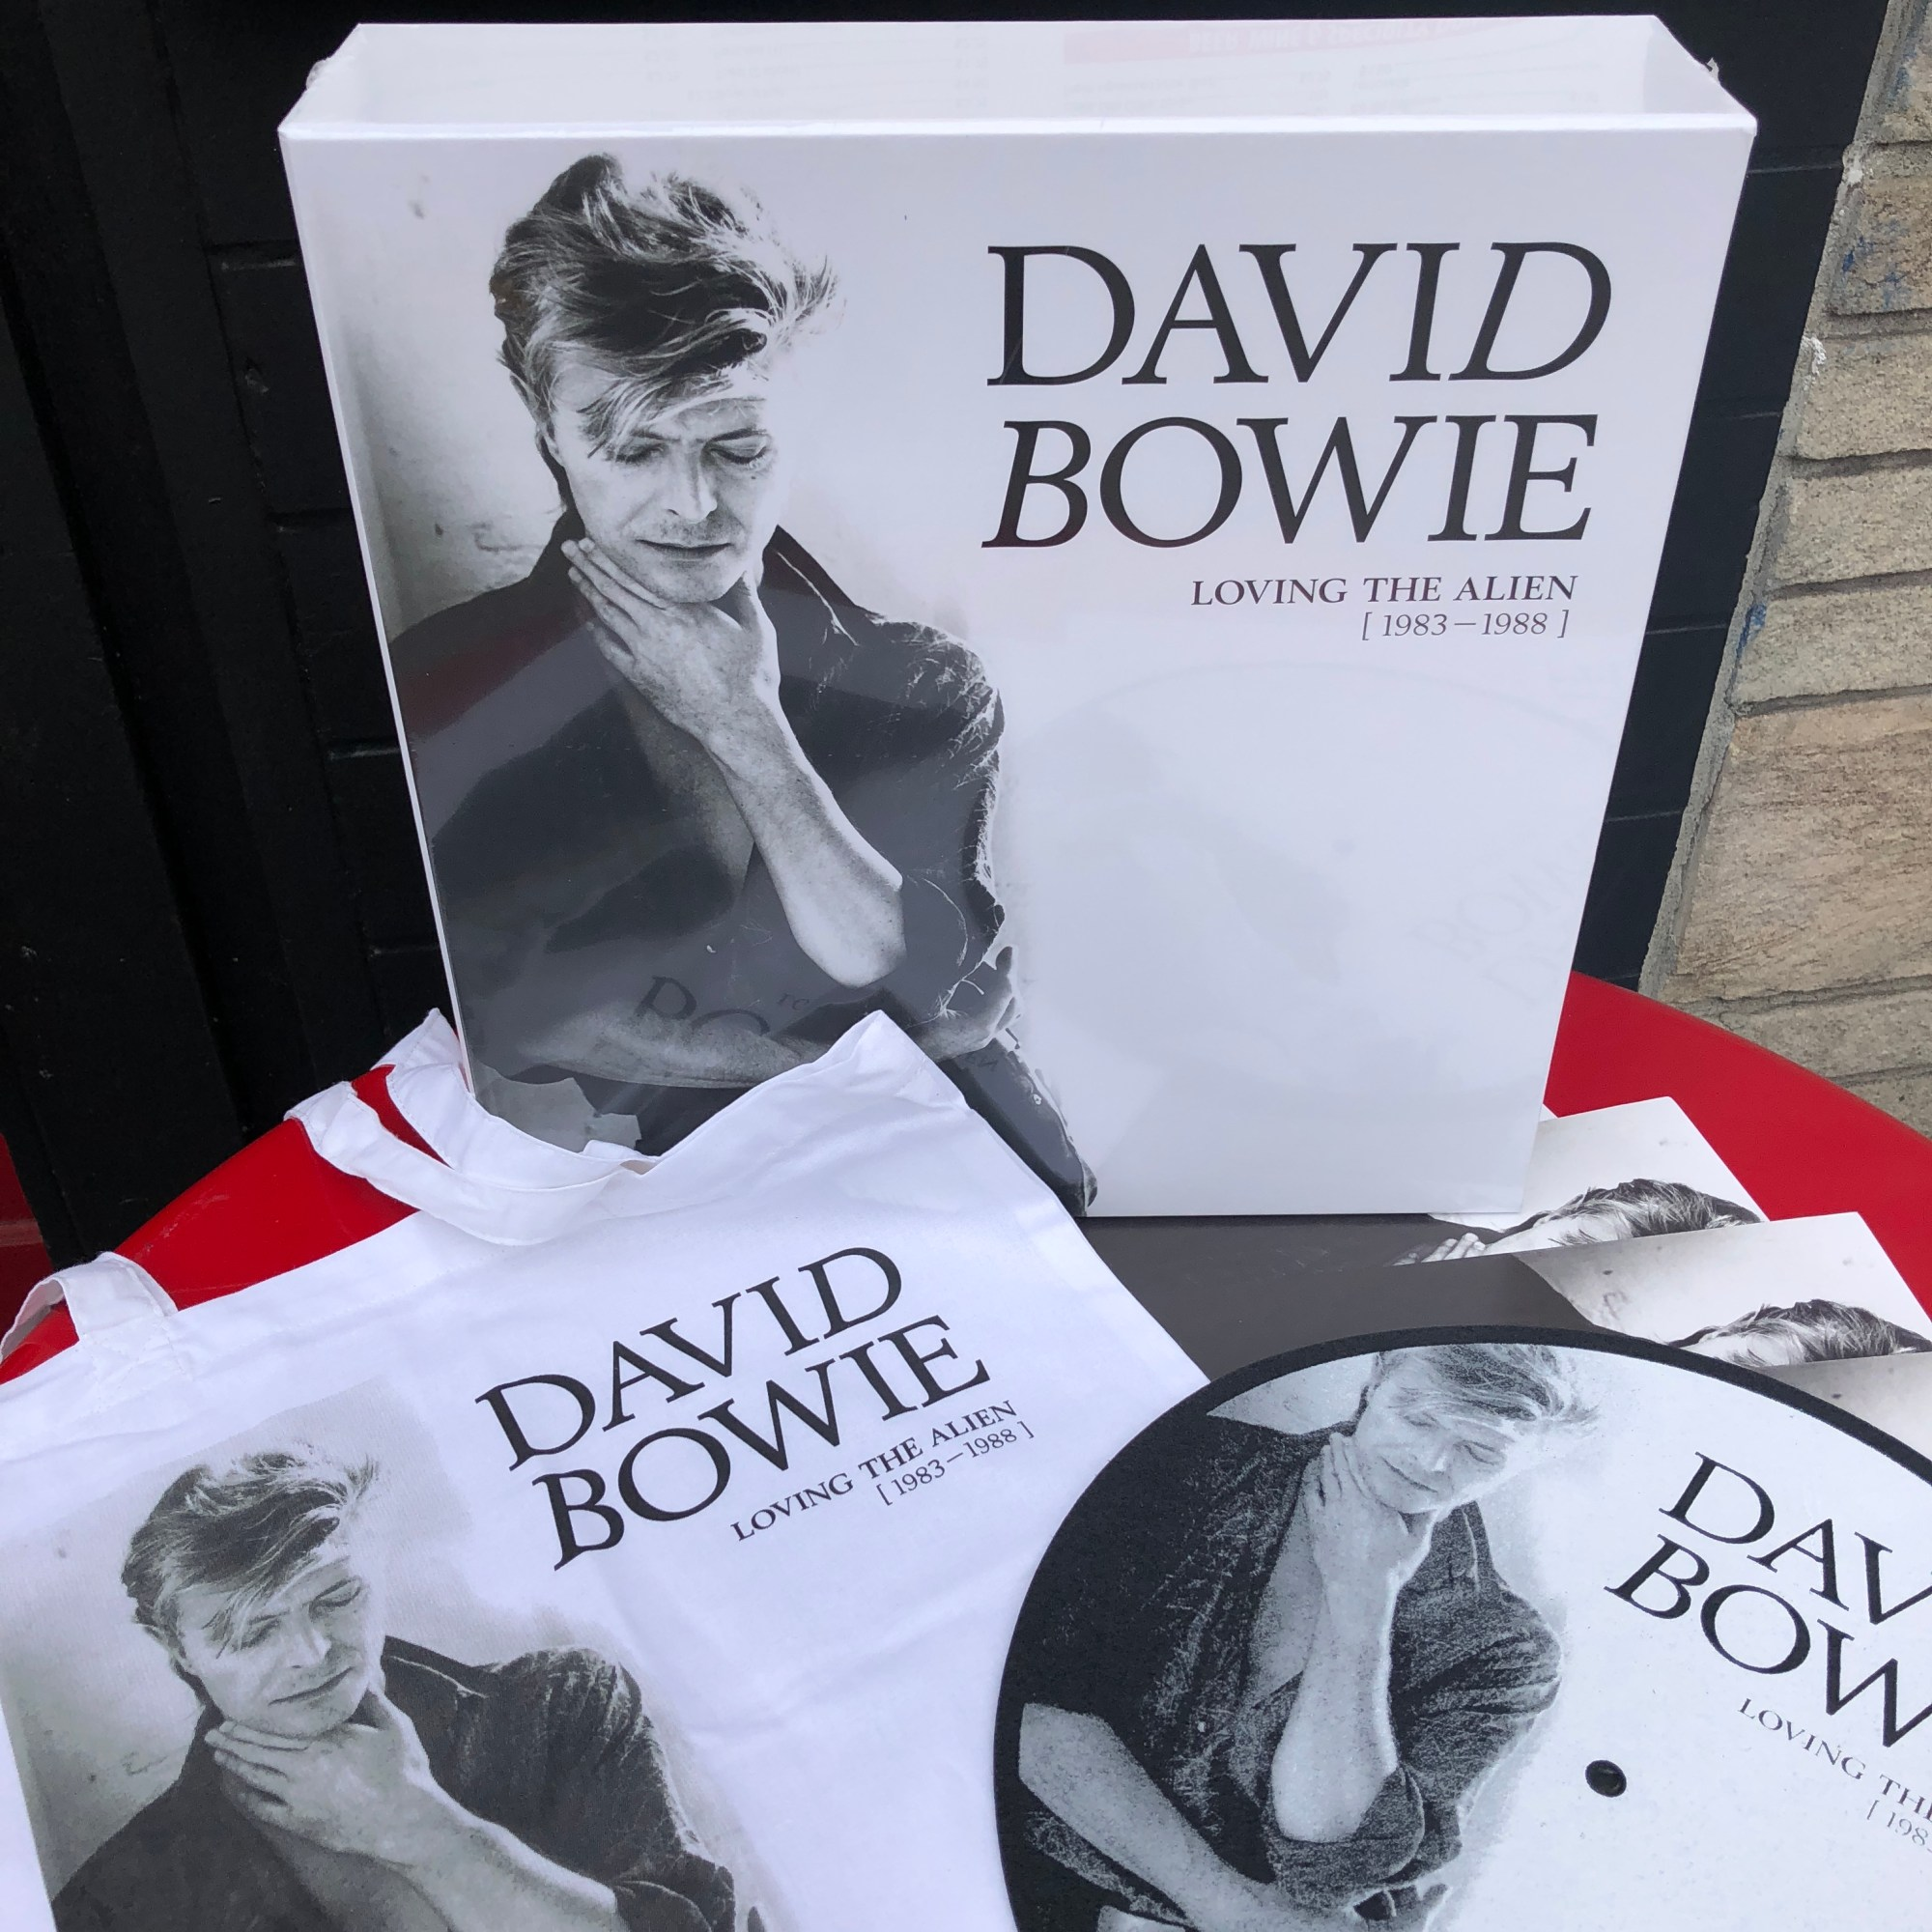 hight resolution of david bowie loving the alien 1983 1988 is the fourth in a series of box sets spanning his entire career from 1967 is out today available in both cd and